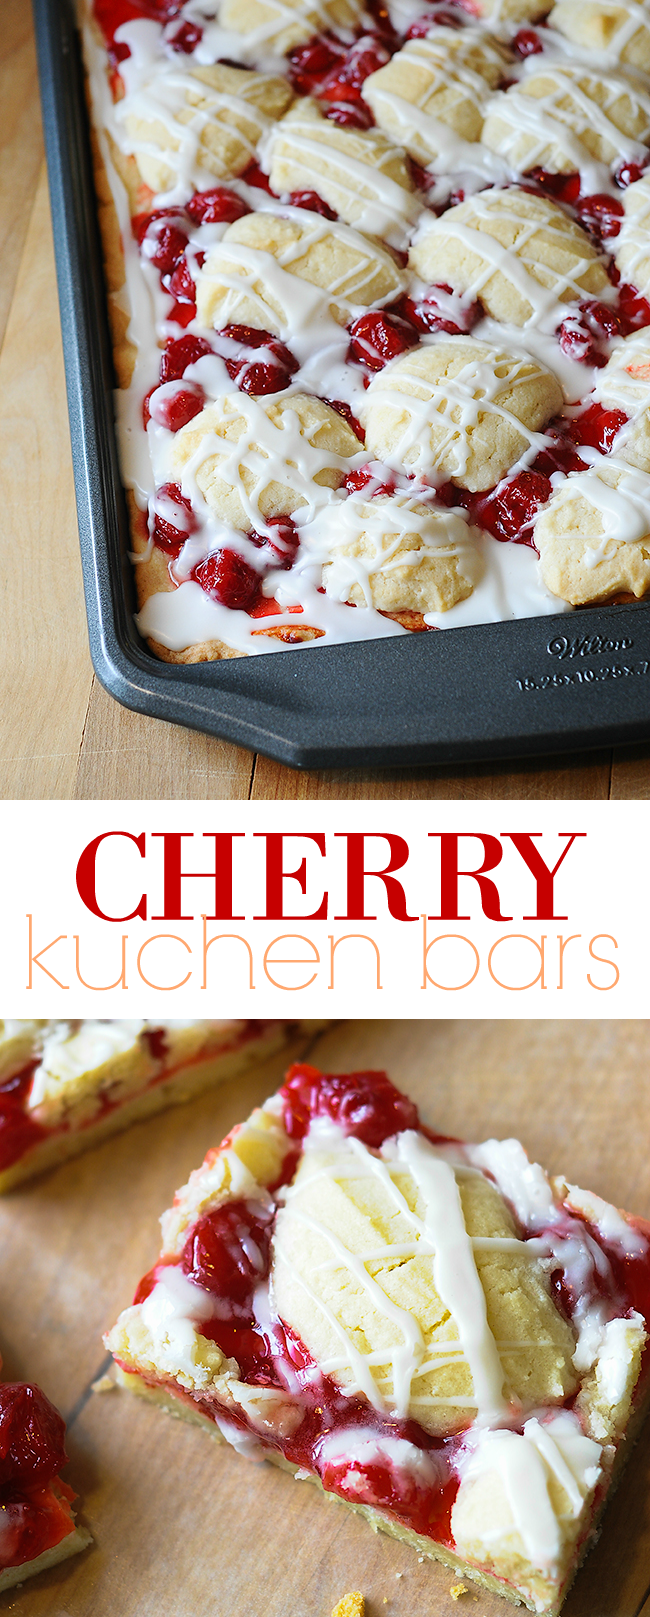 Cottage cheese kuchen bars